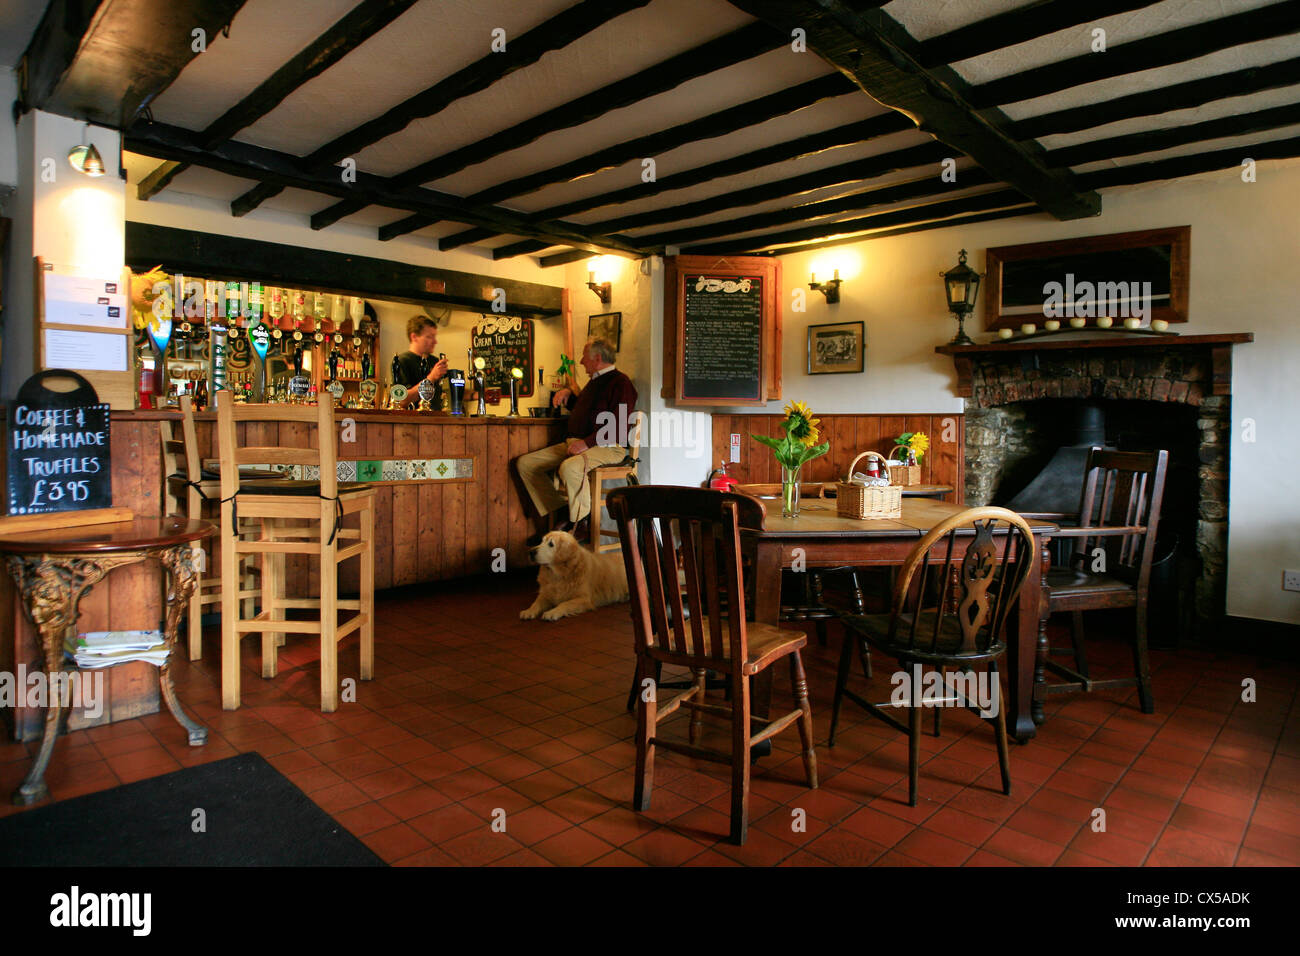 English country pub scene man and dog at bar, wooden beams ceiling - Stock Image